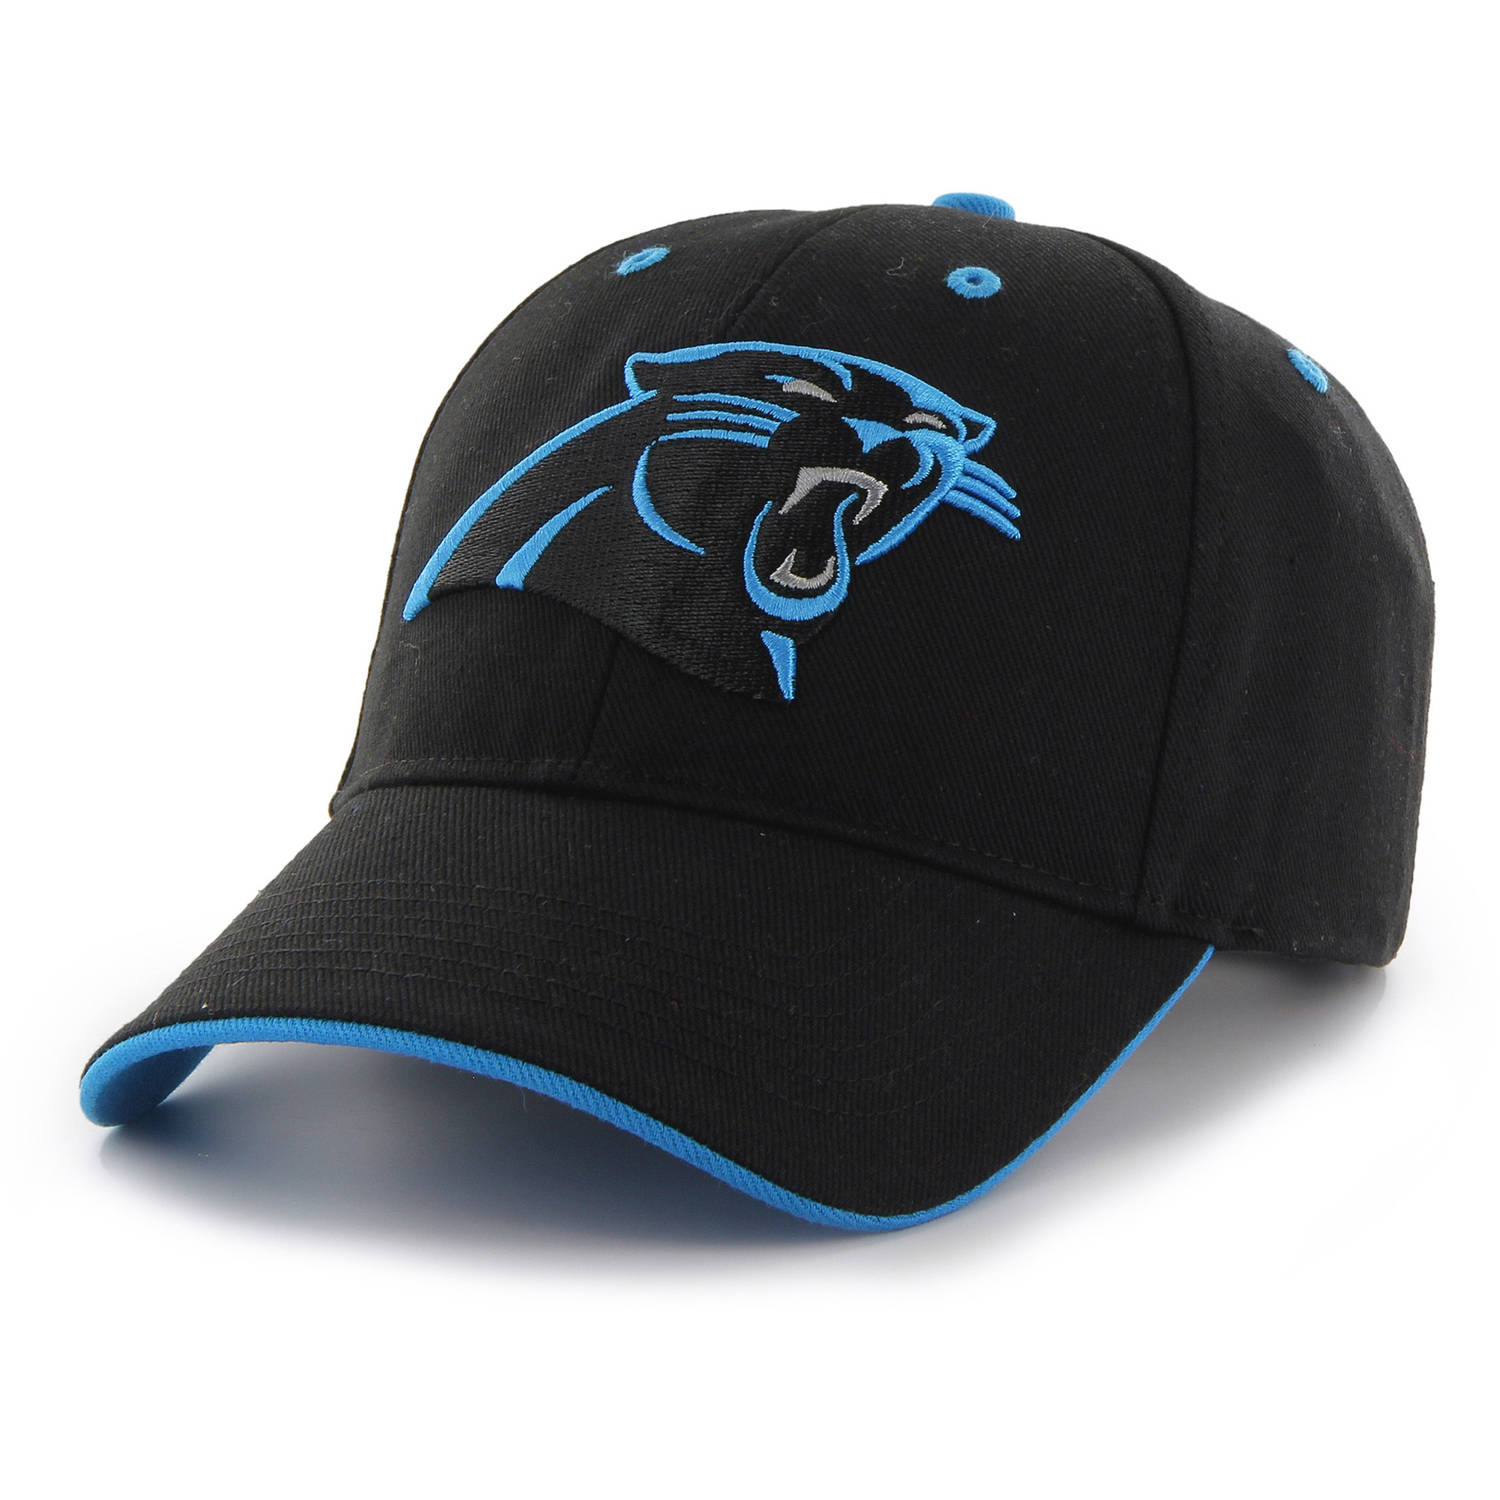 NFL Carolina Panthers Money Maker Youth Cap / Hat by Fan Favorite